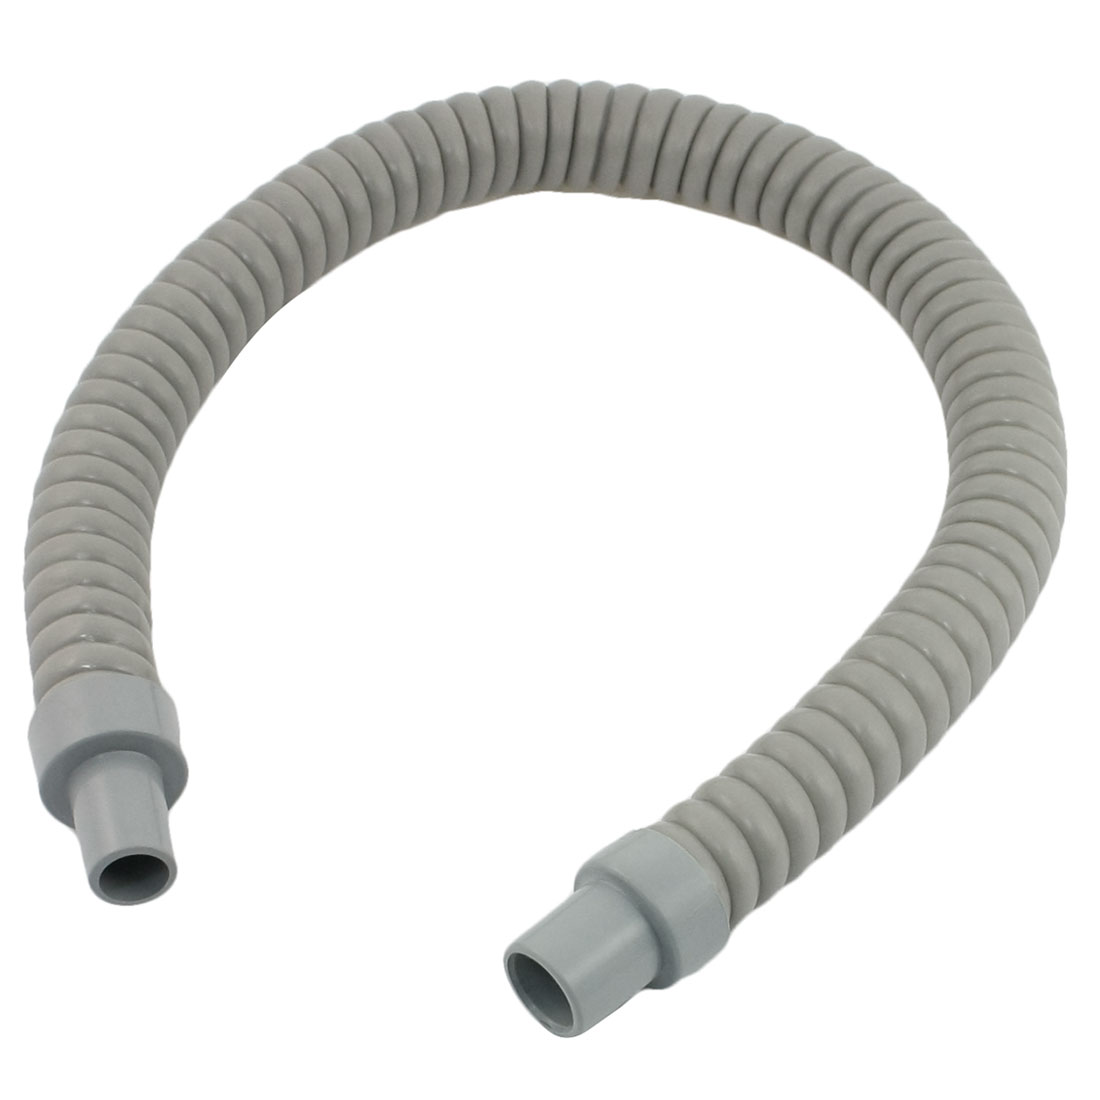 "Unique Bargains 23.6"" 60cm Length Gray Drain Hose Replacement for Air Conditioner"